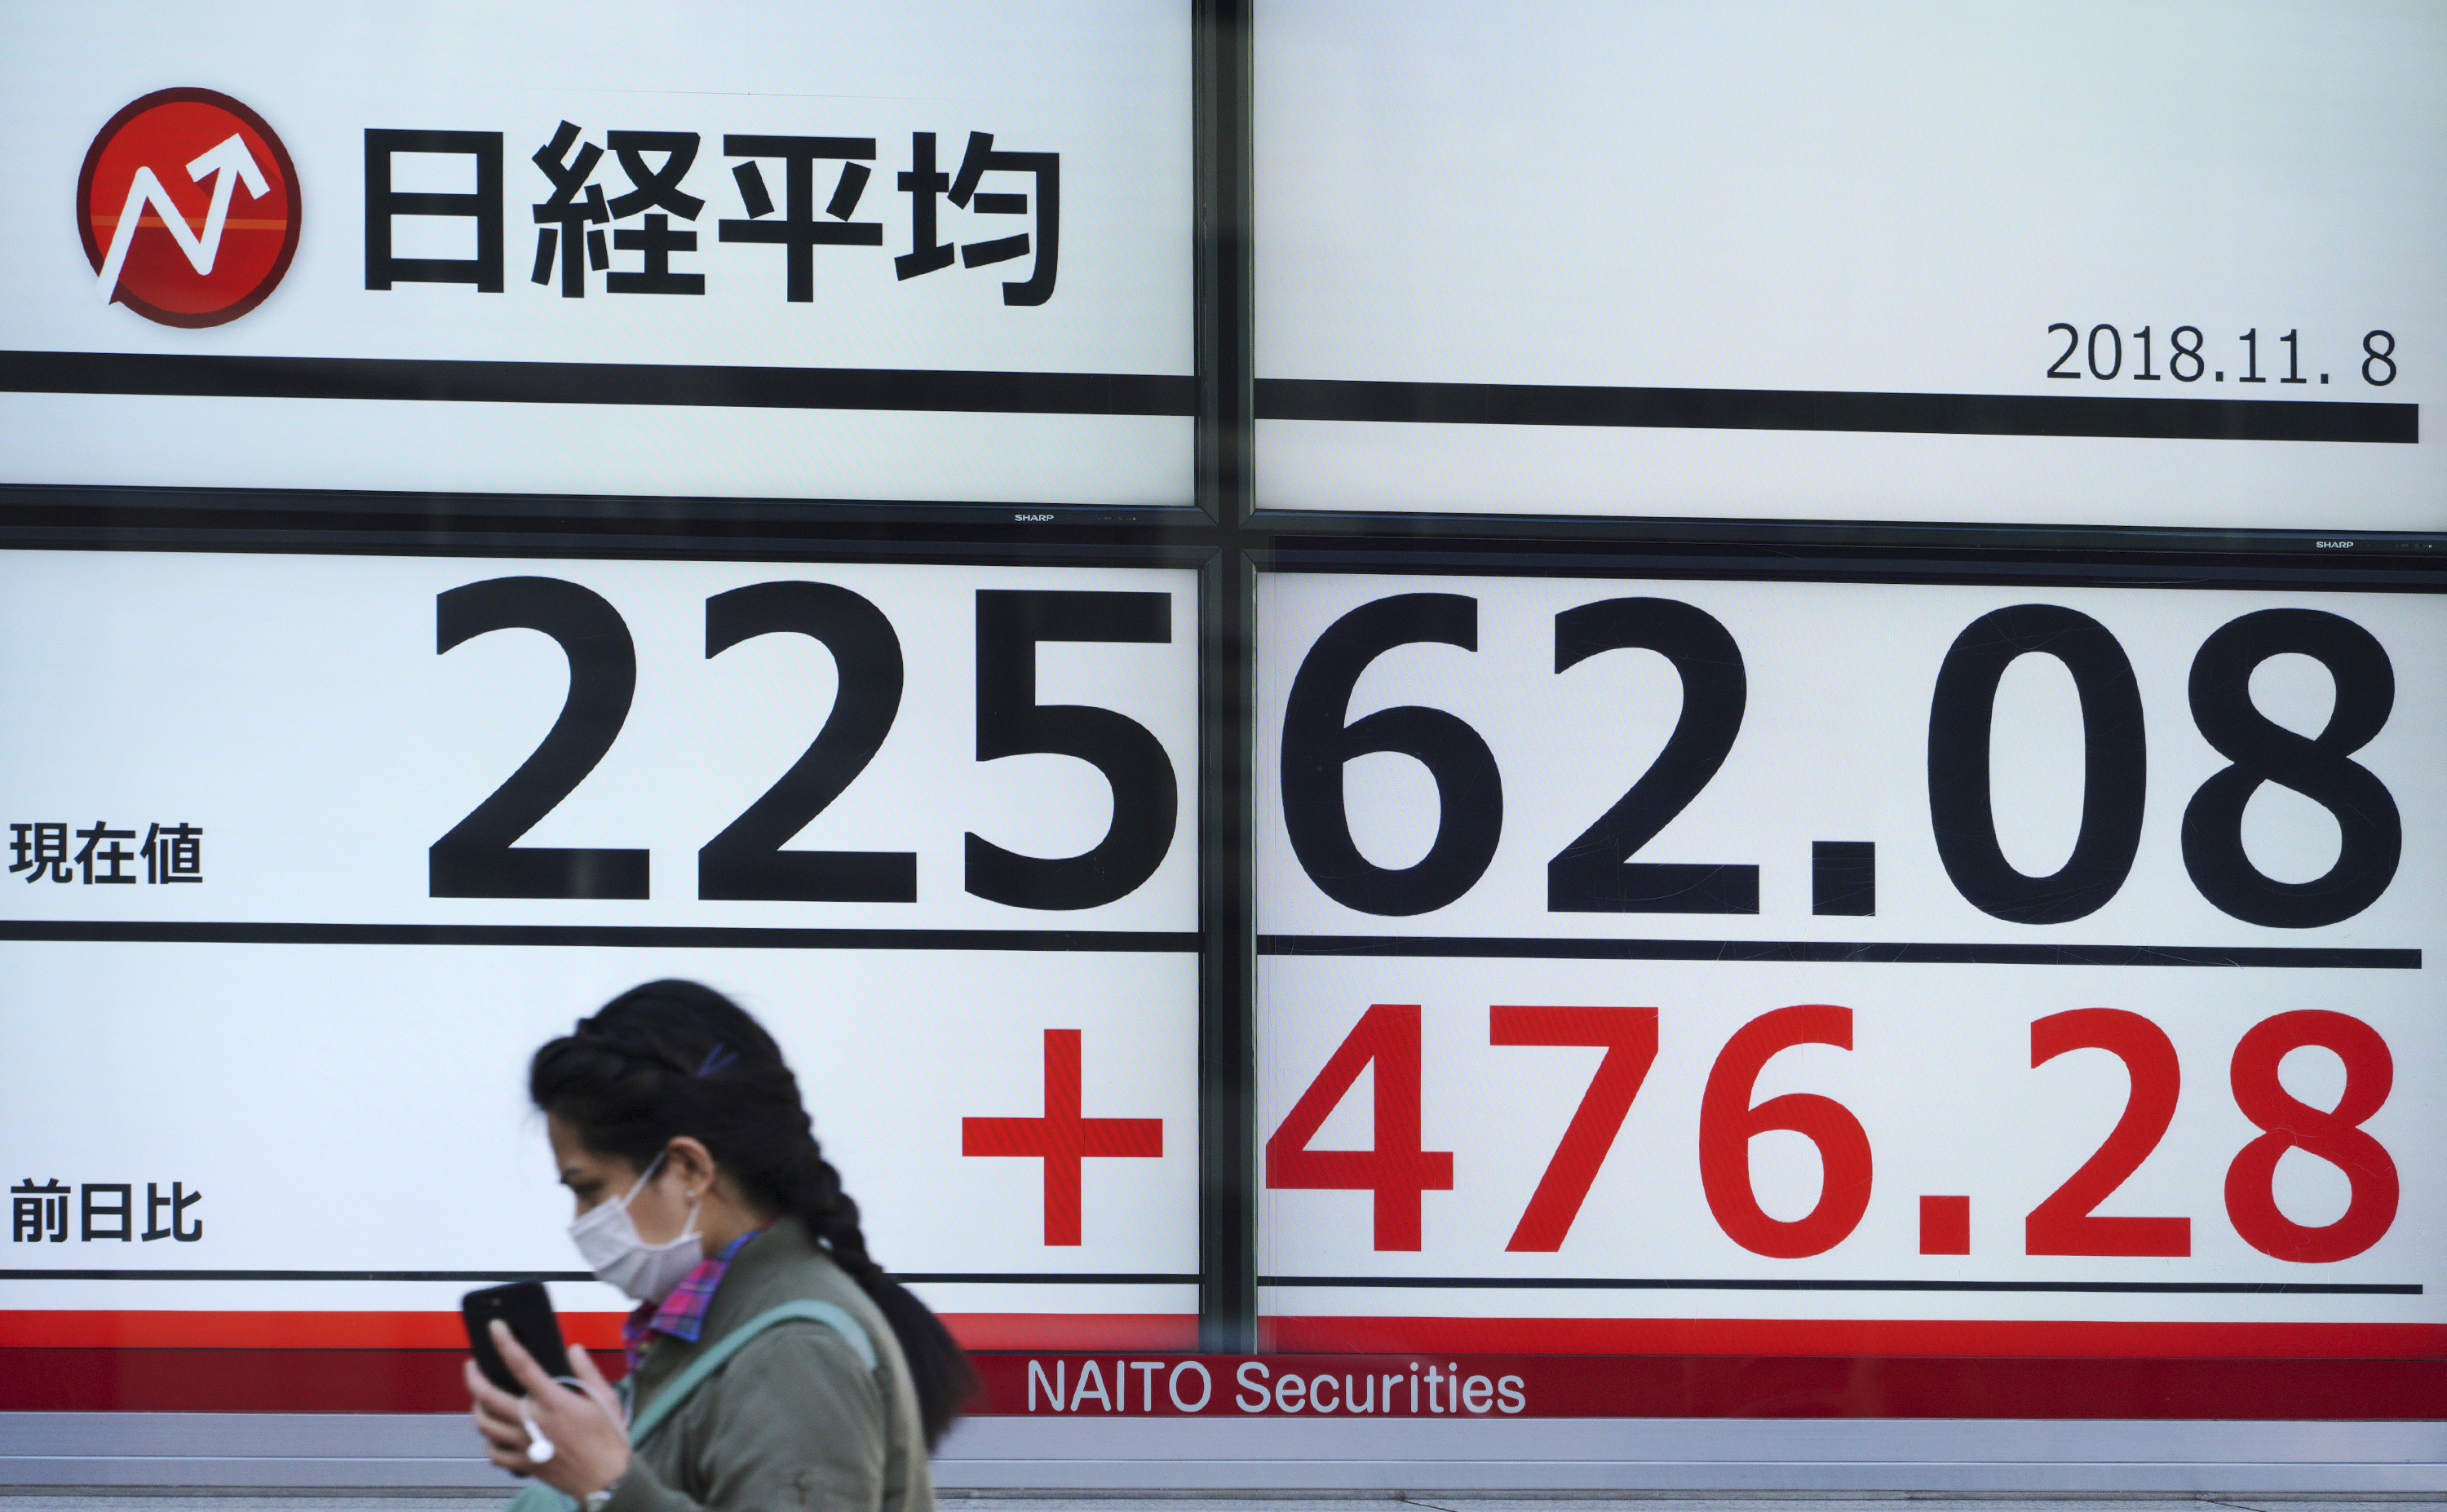 A woman walks past an electronic stock board showing Japan's Nikkei 225 index at a securities firm in Tokyo Thursday, Nov. 8, 2018. Asian markets rose on Thursday after the U.S. midterm elections went as expected, soothing fears of a sudden shift on trade and economic policies. (AP Photo/Eugene Hoshiko)